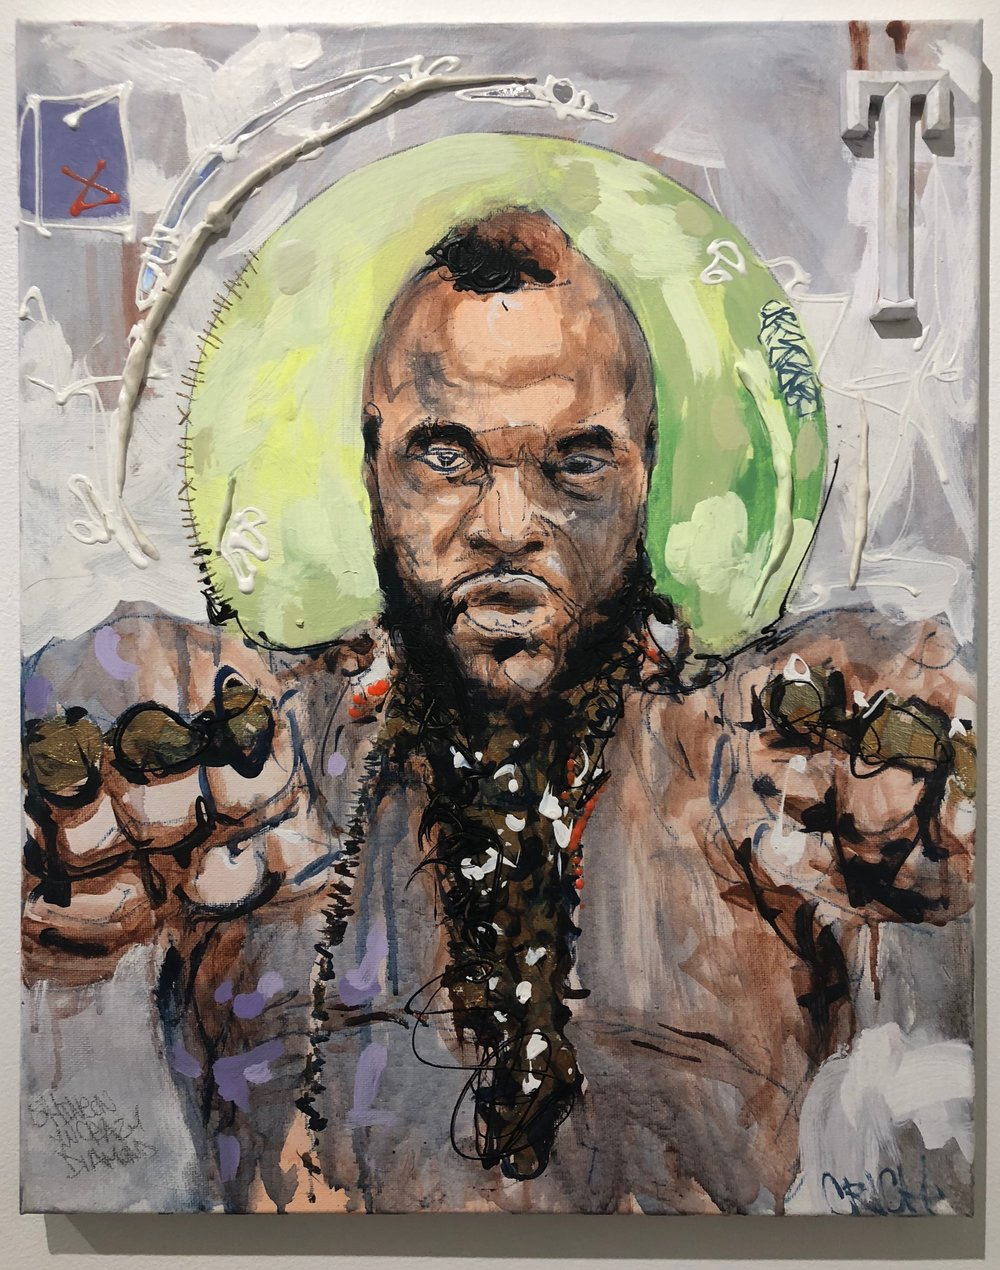 DEEPSPACE-CLARENCERICH-MR.T-20X16-ACRYLIC_GOLDLEAF_STITCHING_COLLAGEONCANVAS-2014-$800.JPG